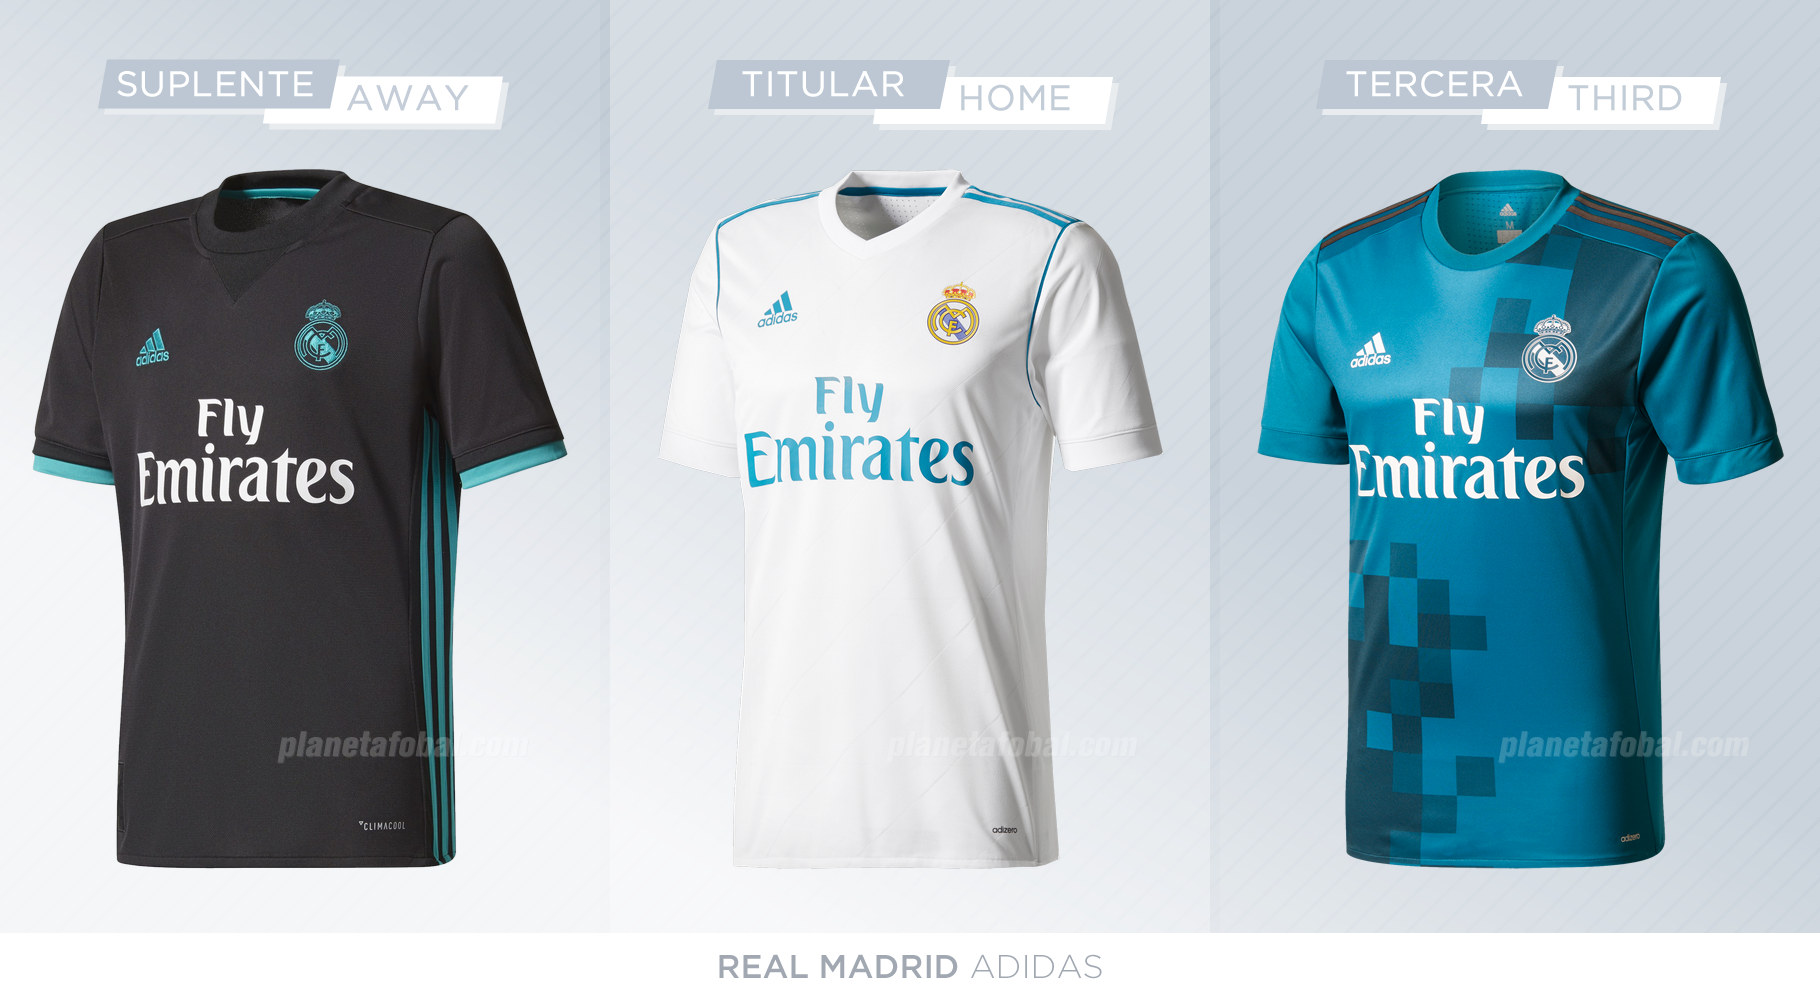 Camisetas del Real Madrid | Adidas